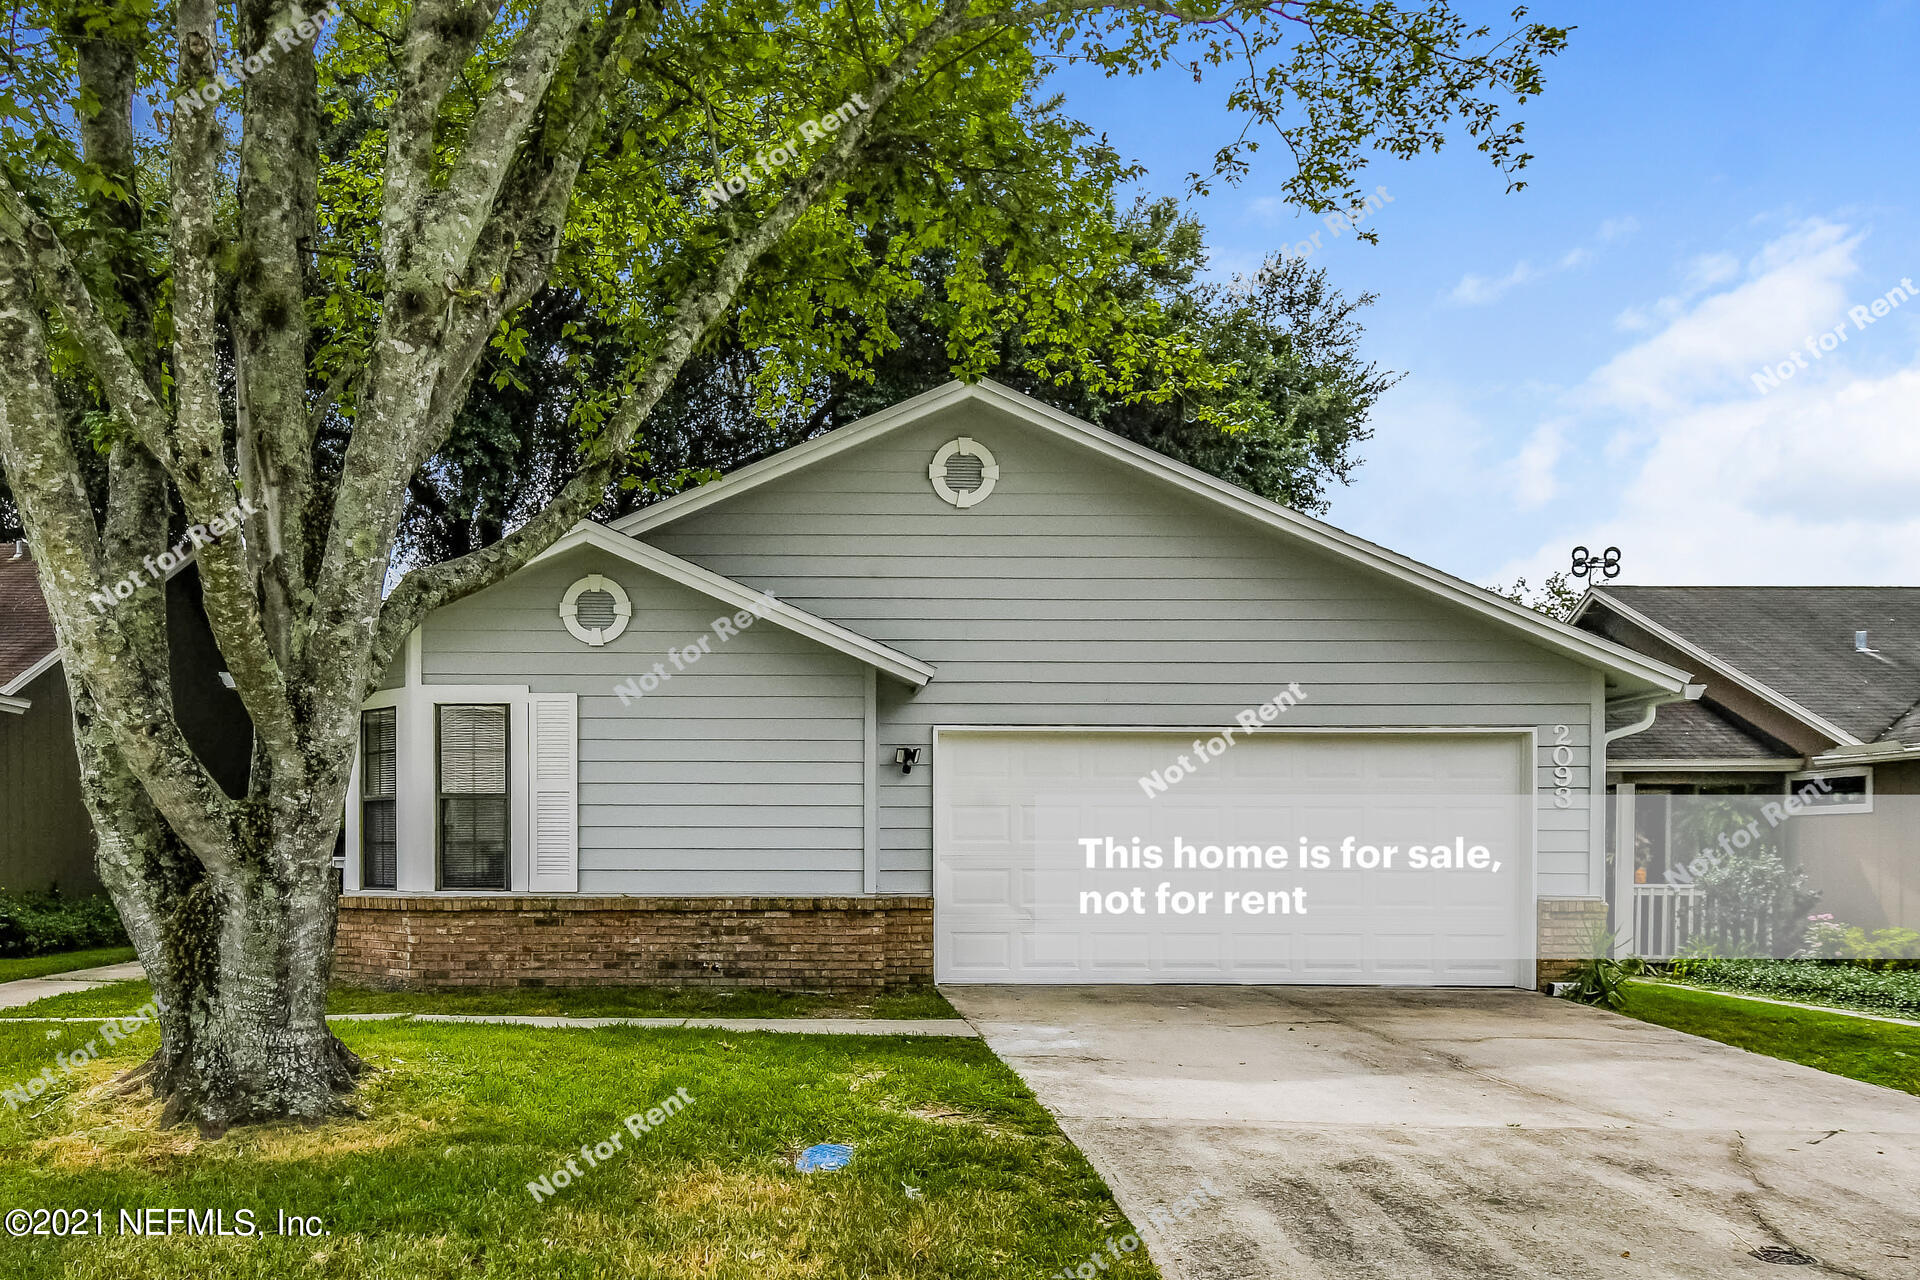 2093 TANAGER, ORANGE PARK, FLORIDA 32073, 2 Bedrooms Bedrooms, ,2 BathroomsBathrooms,Residential,For sale,TANAGER,1135500